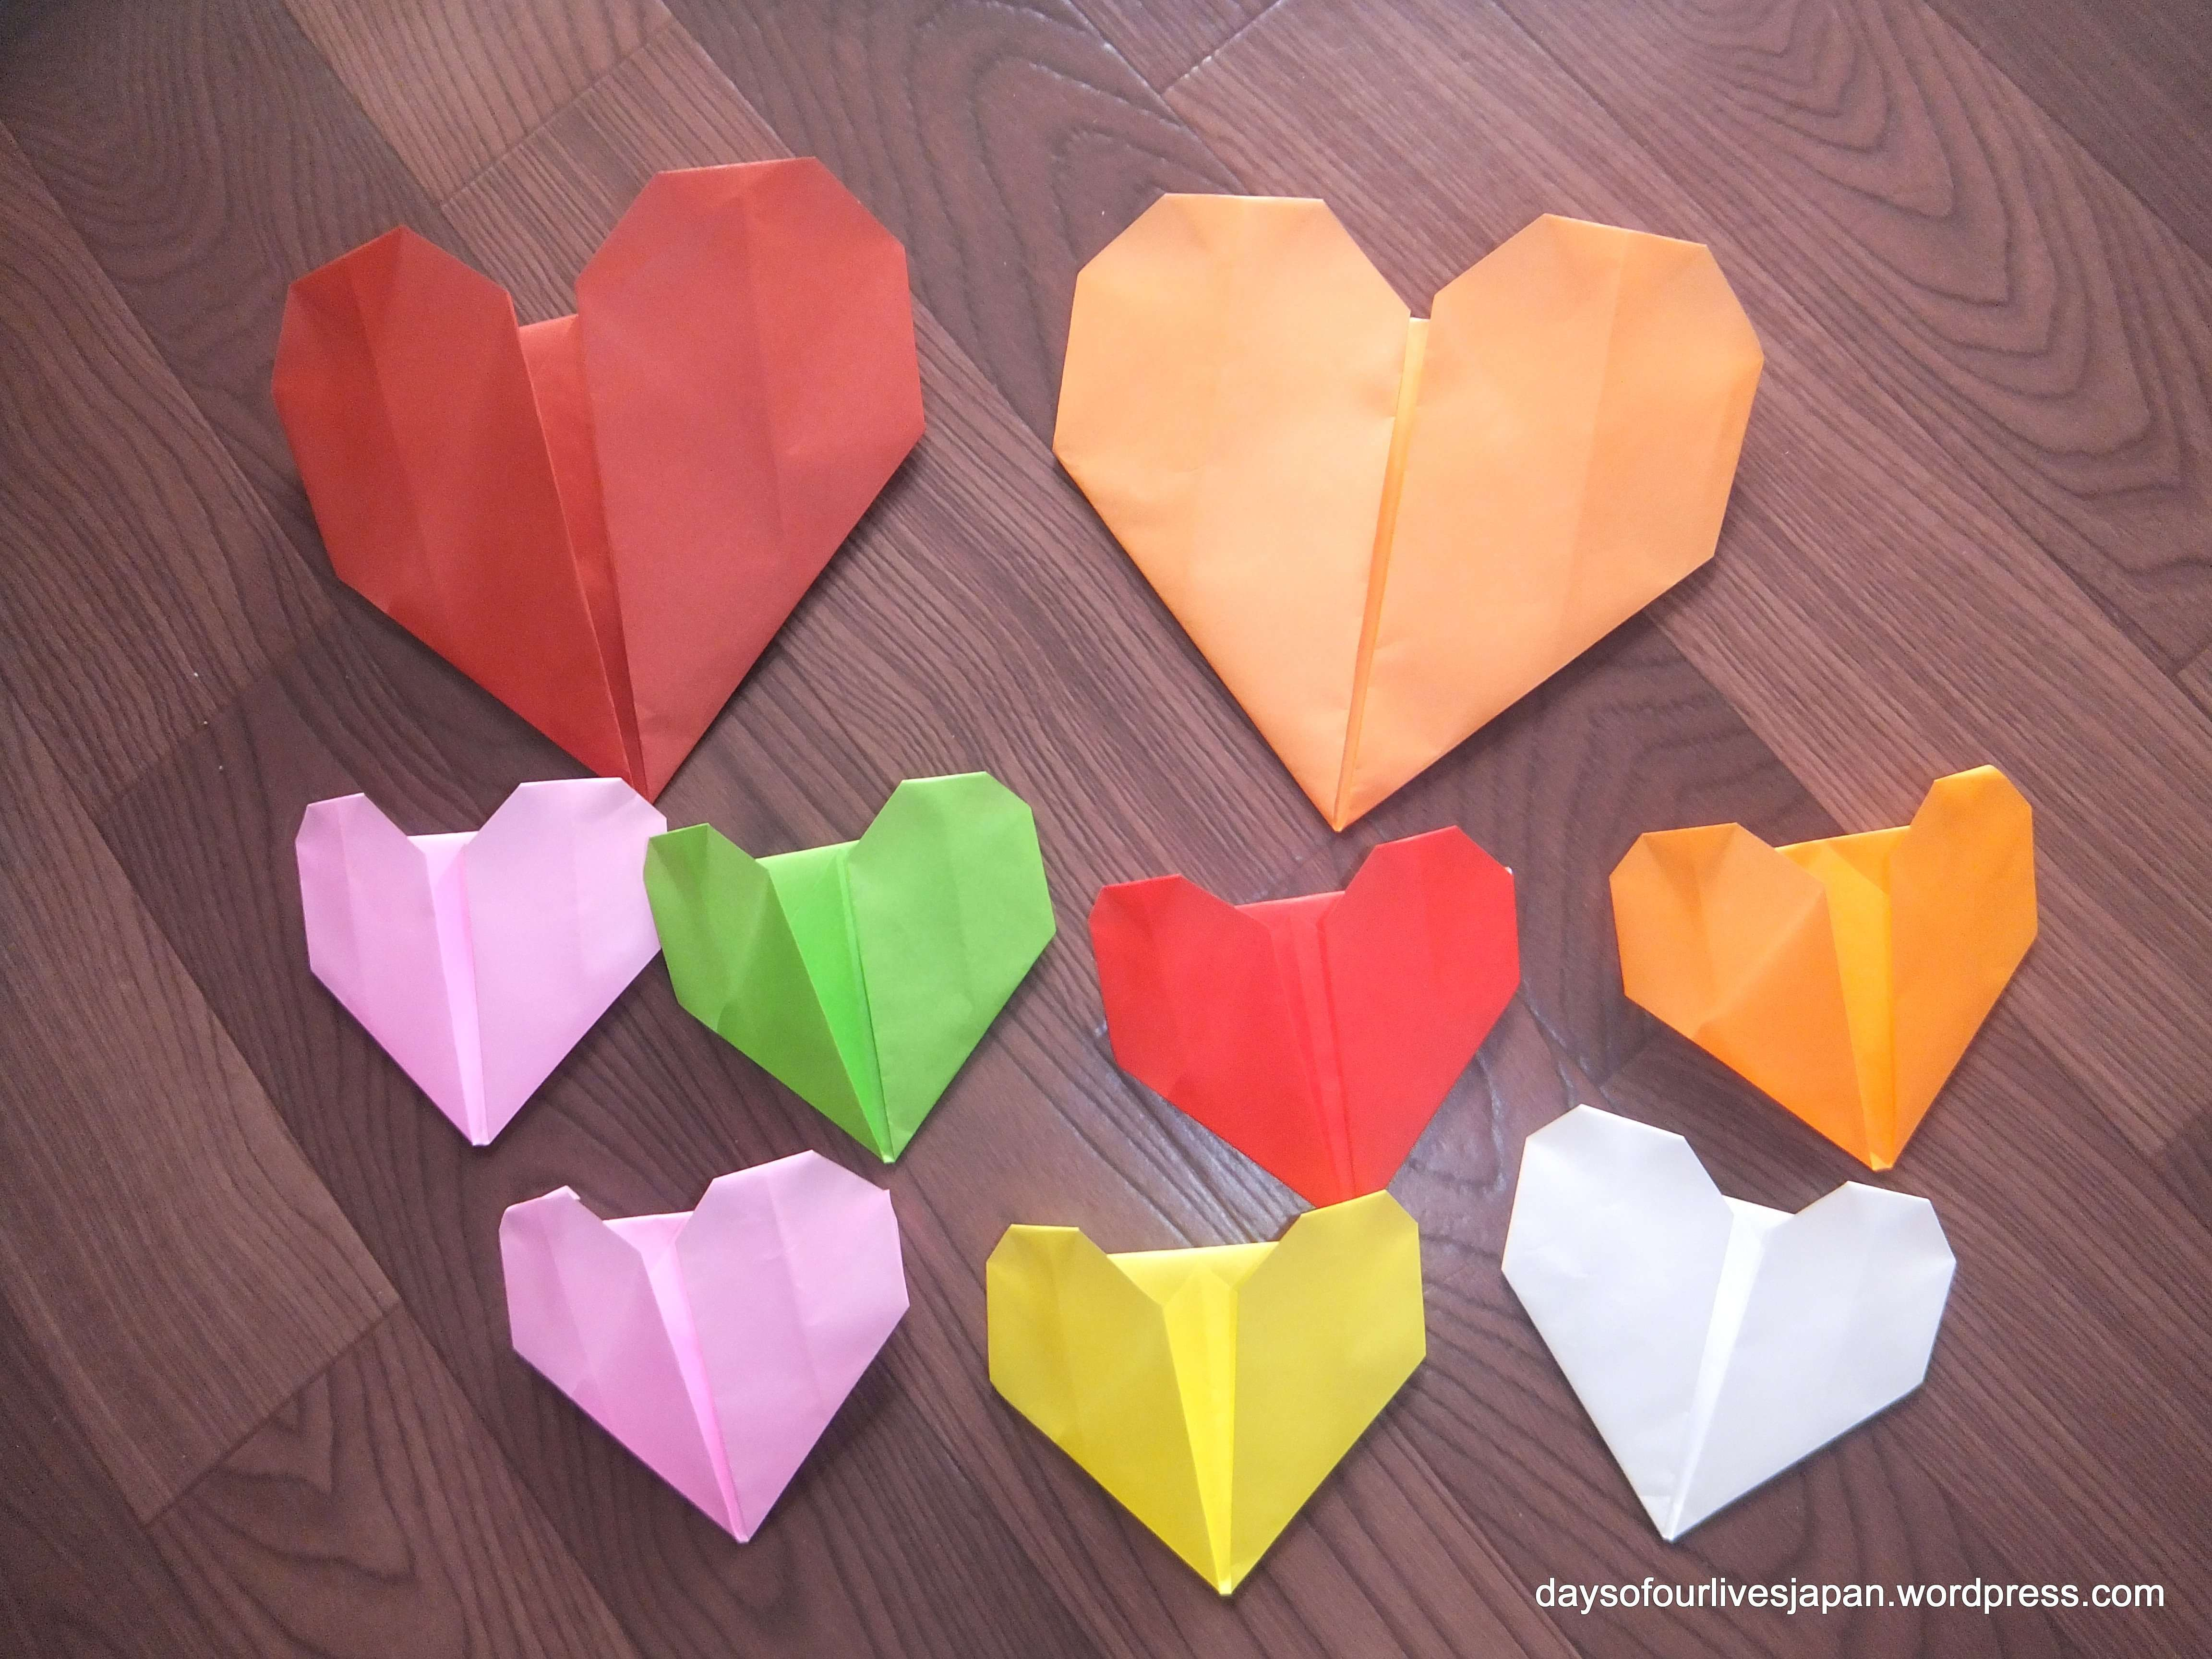 These Simple Origami Hearts Suited To Young Children And Beginners Were A Big Hit With My Toddler Preschooler Today